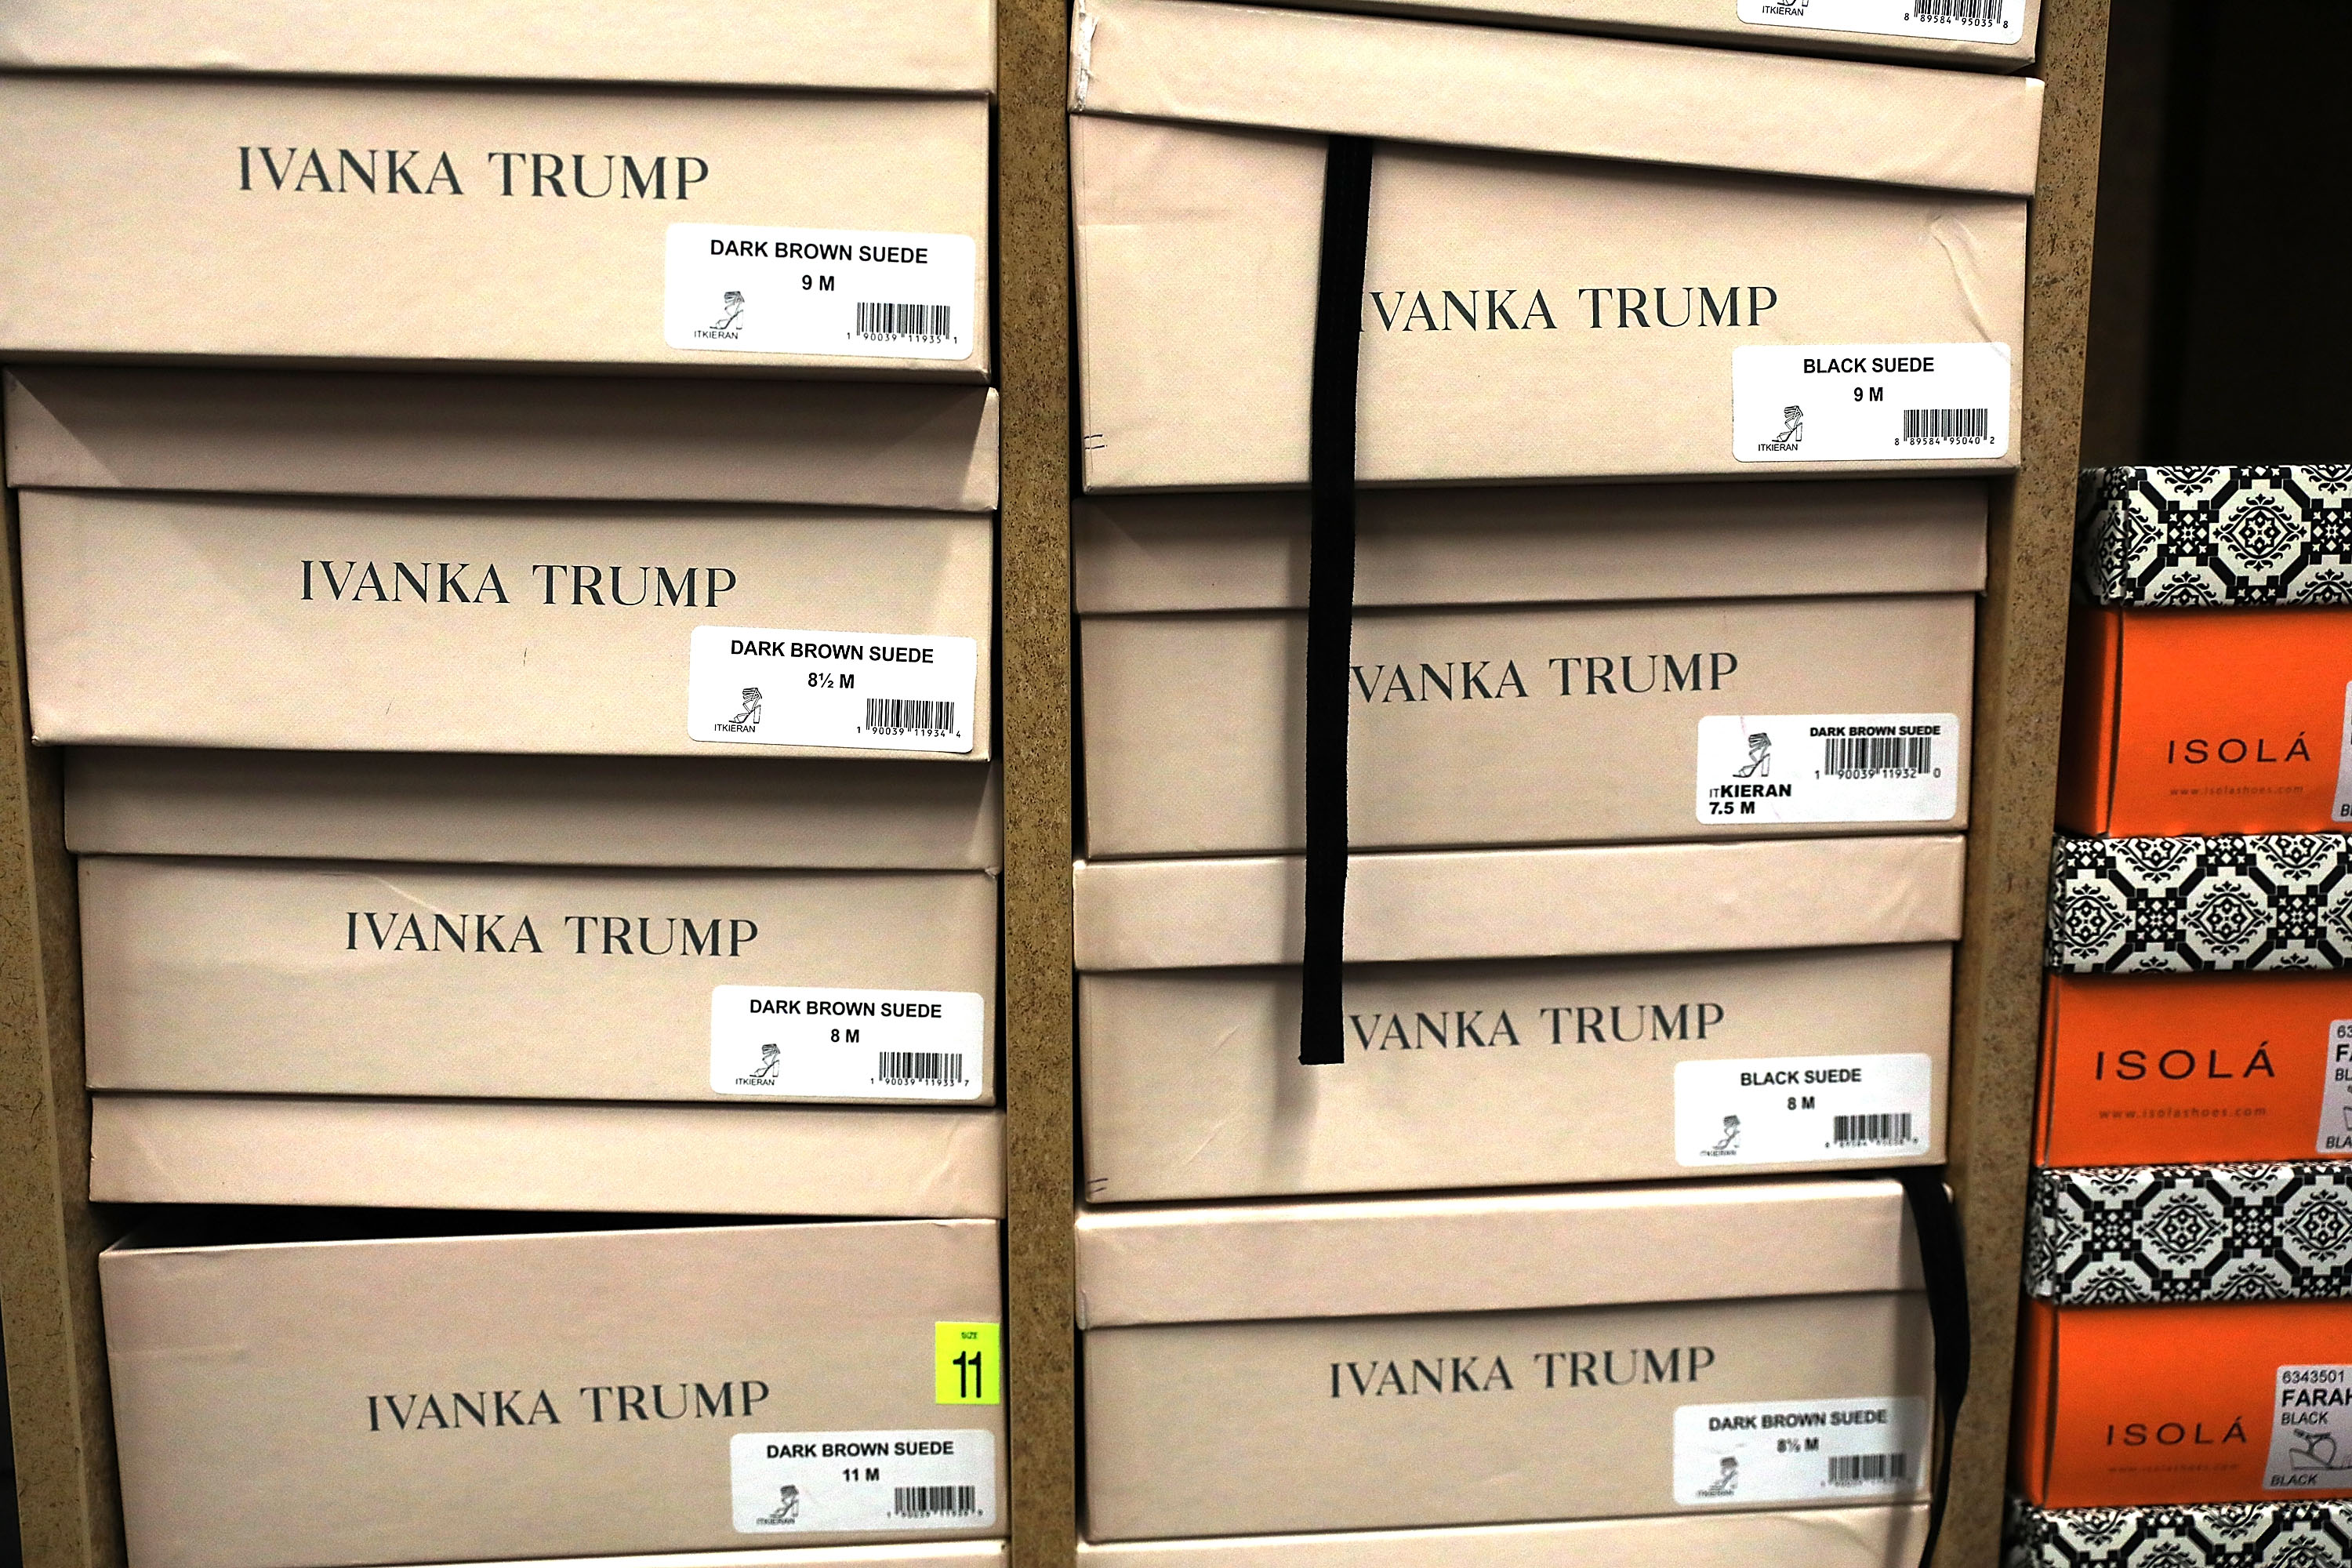 Ivanka Trump brand shoe boxes stacked in store display